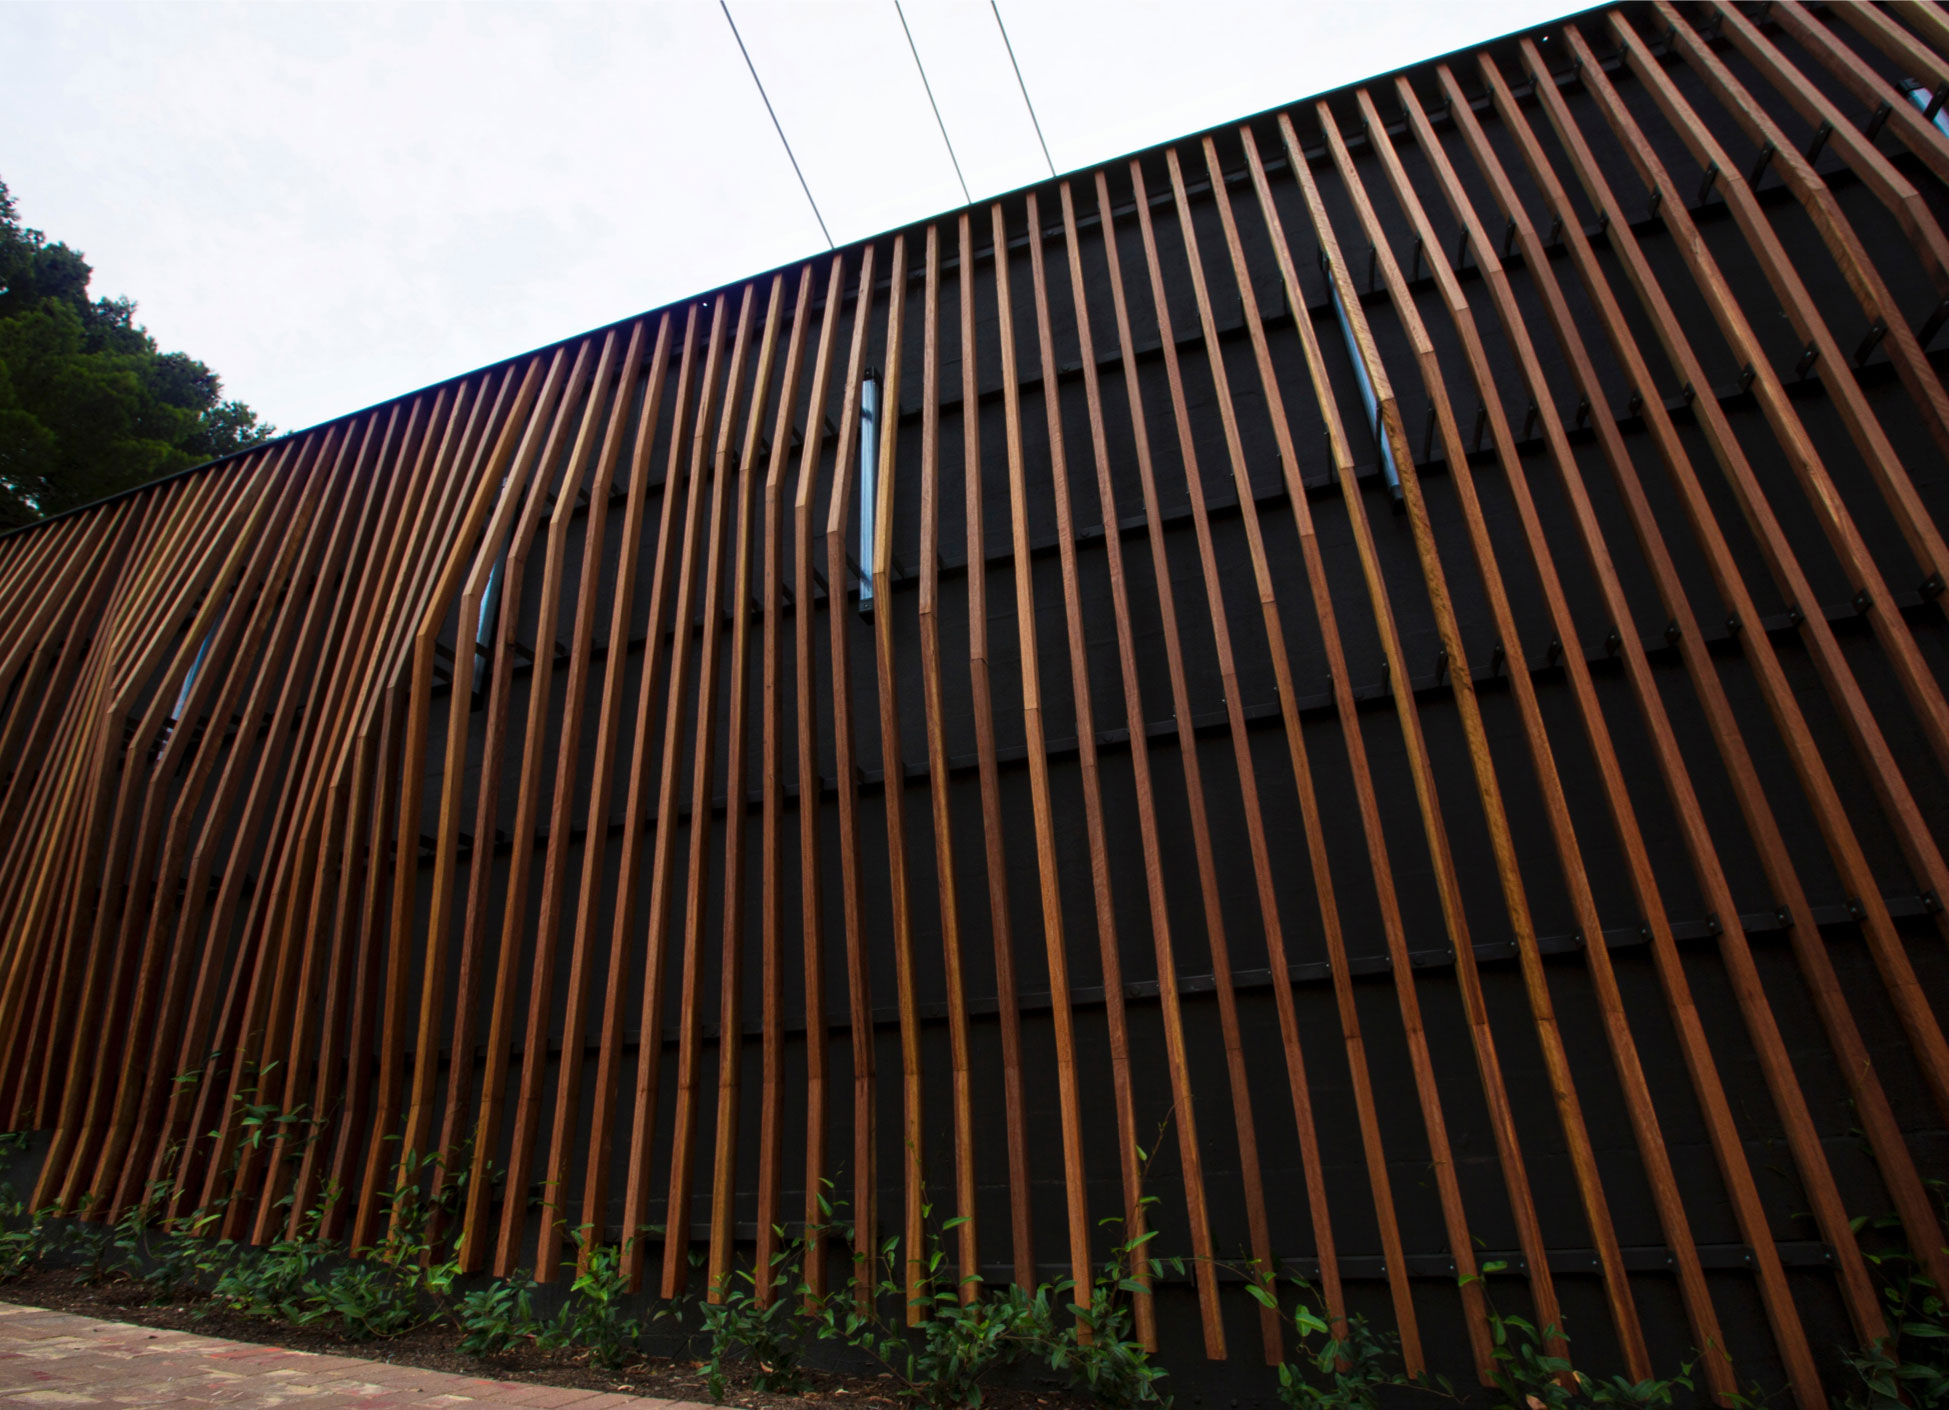 The articulated timber facade provided an aesthetically responsive and cost effective solution